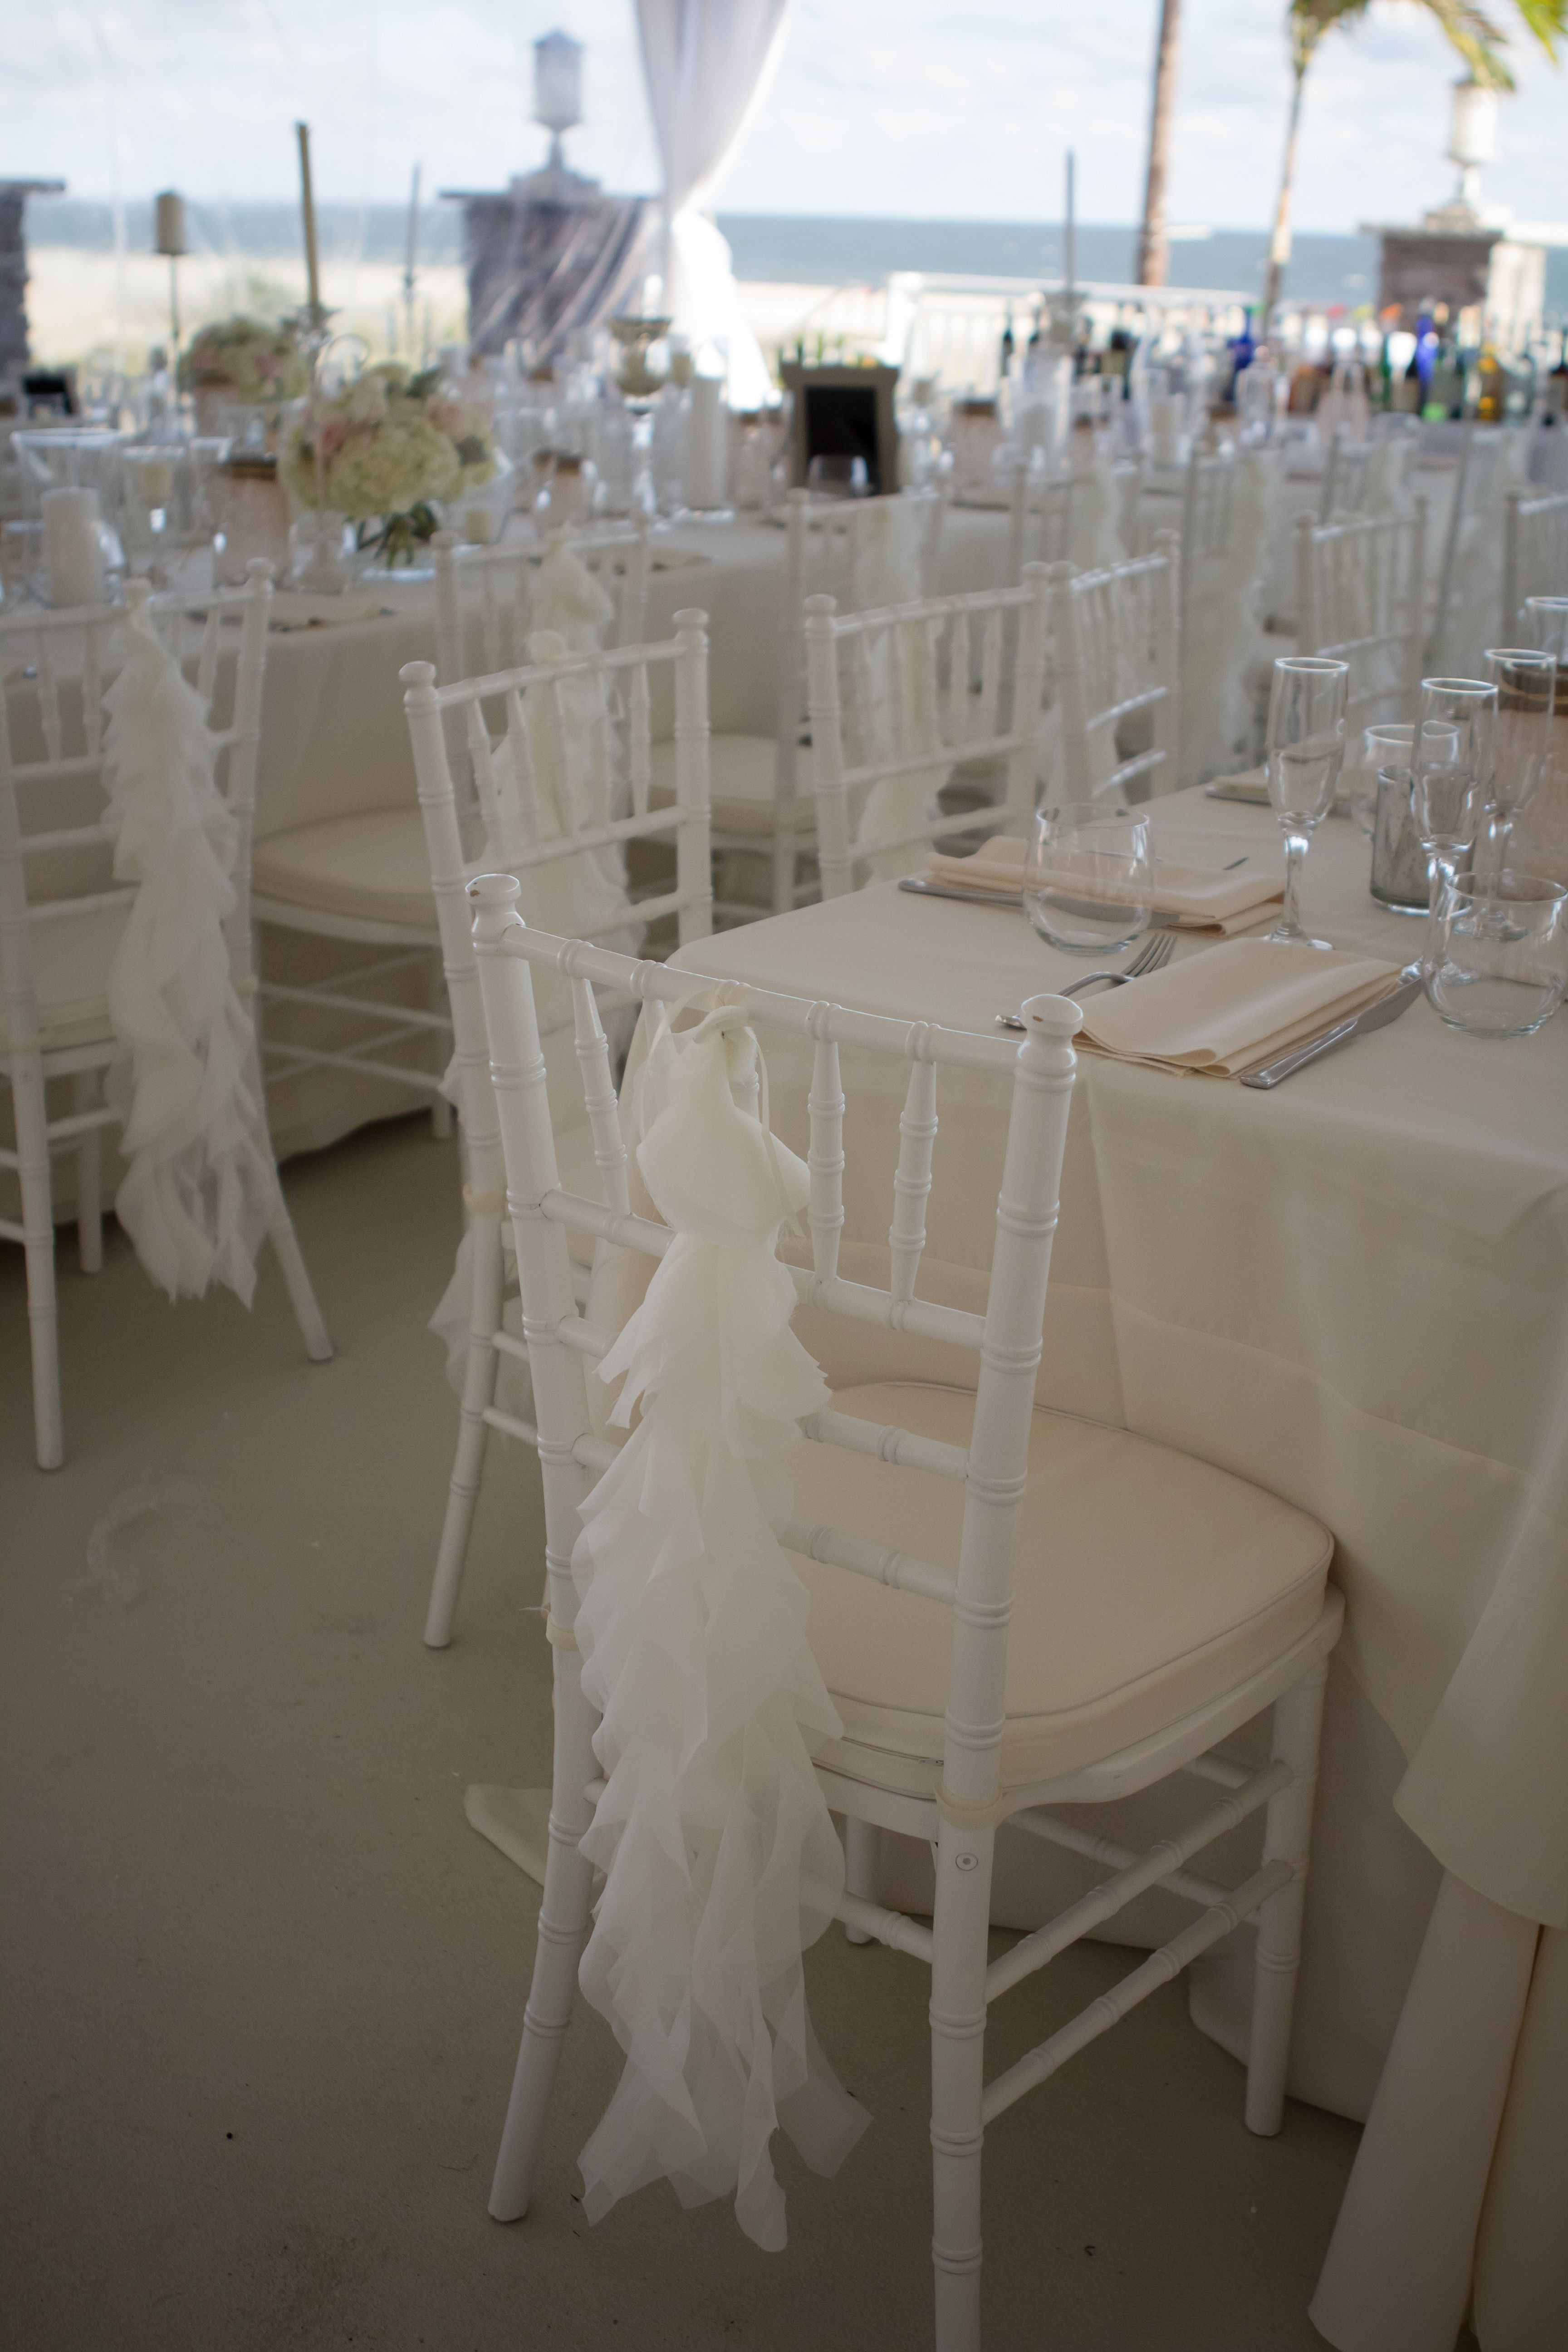 weddings events at the ocean club hotel in cape may nj 609 884 rh pinterest co uk